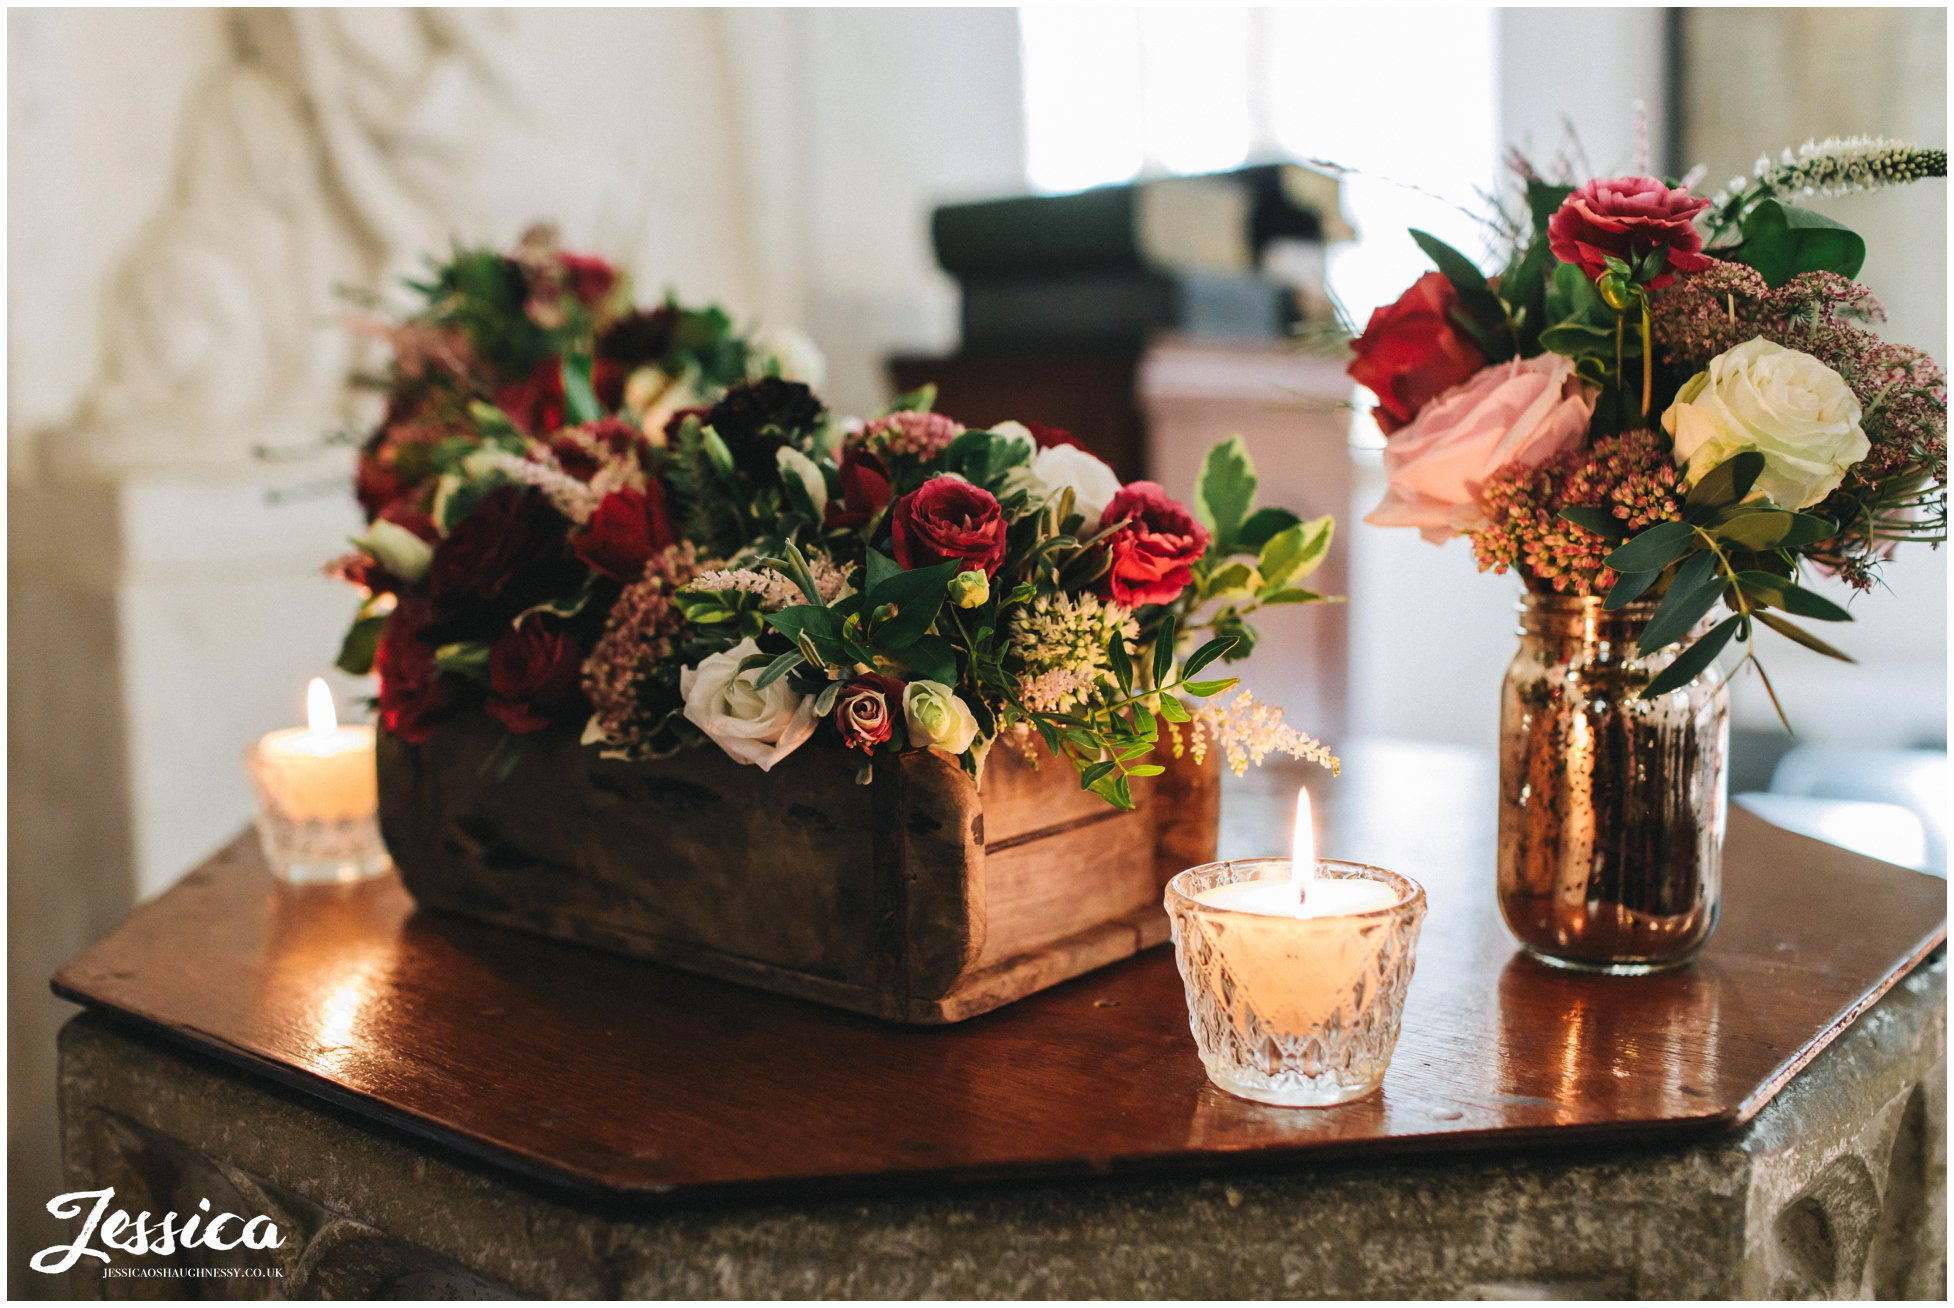 the church is decorated in rustic red flowers